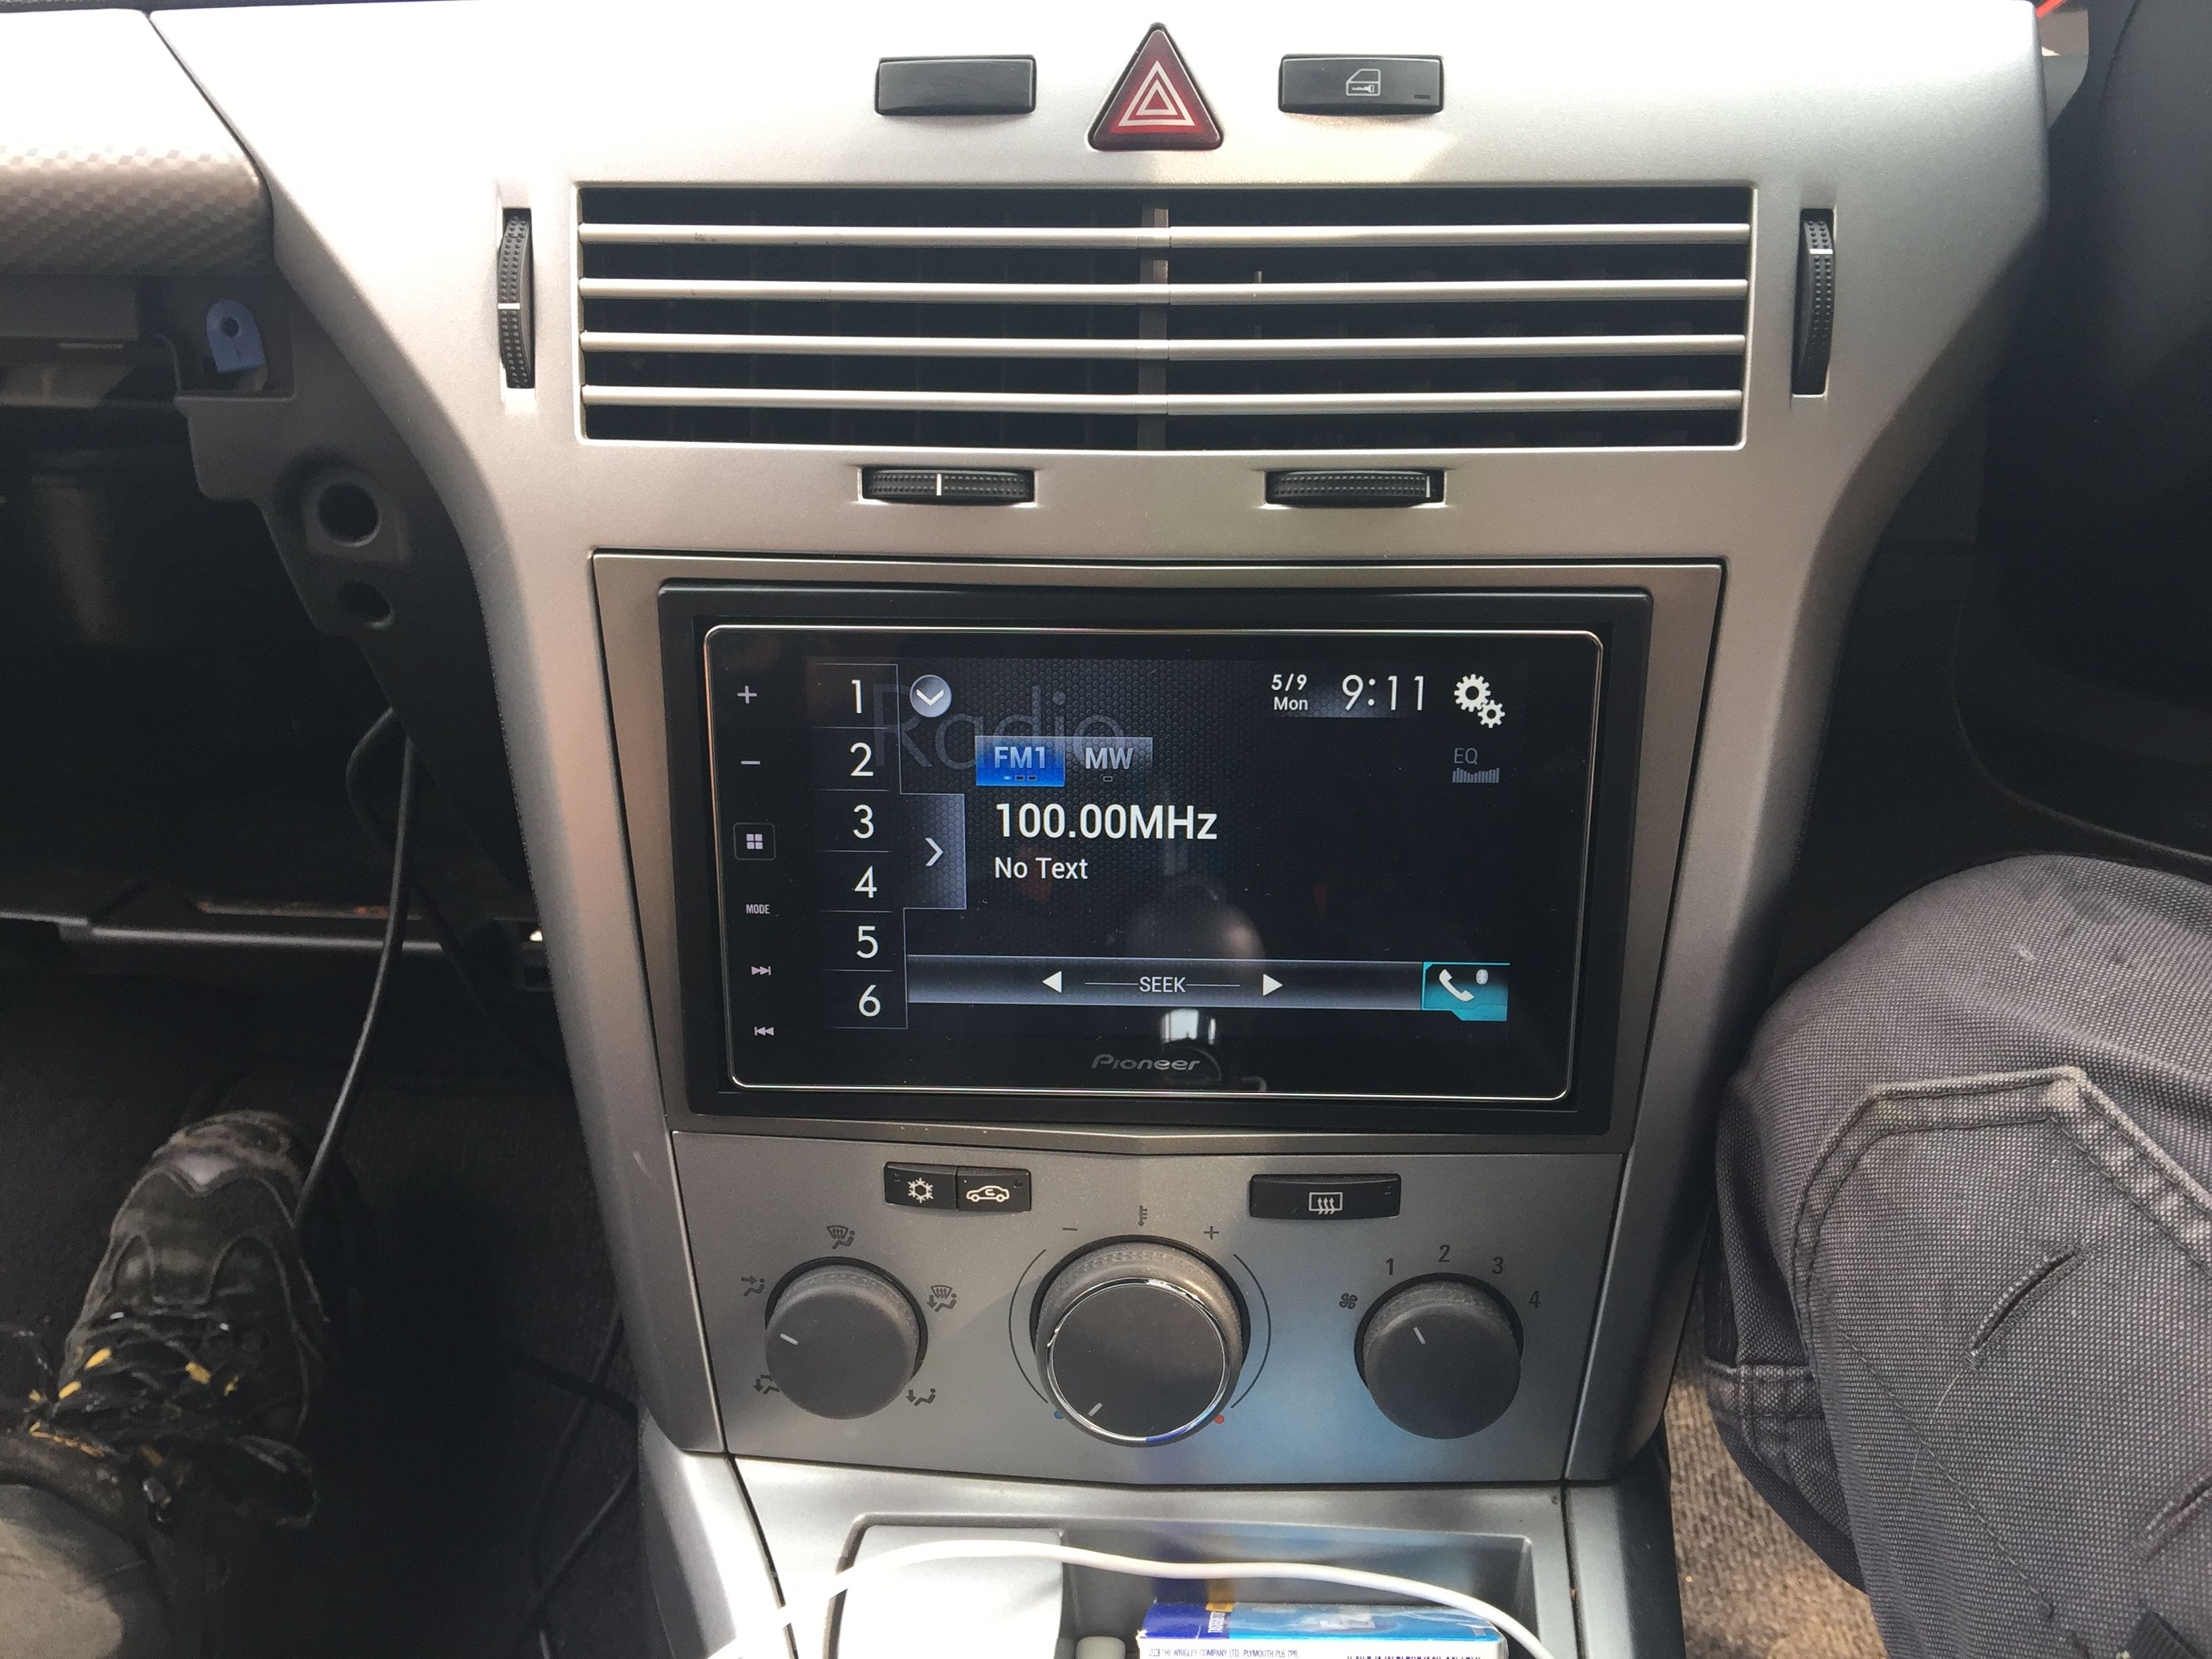 vauxhall astra h van with a pioneer sph120 app radio. Black Bedroom Furniture Sets. Home Design Ideas